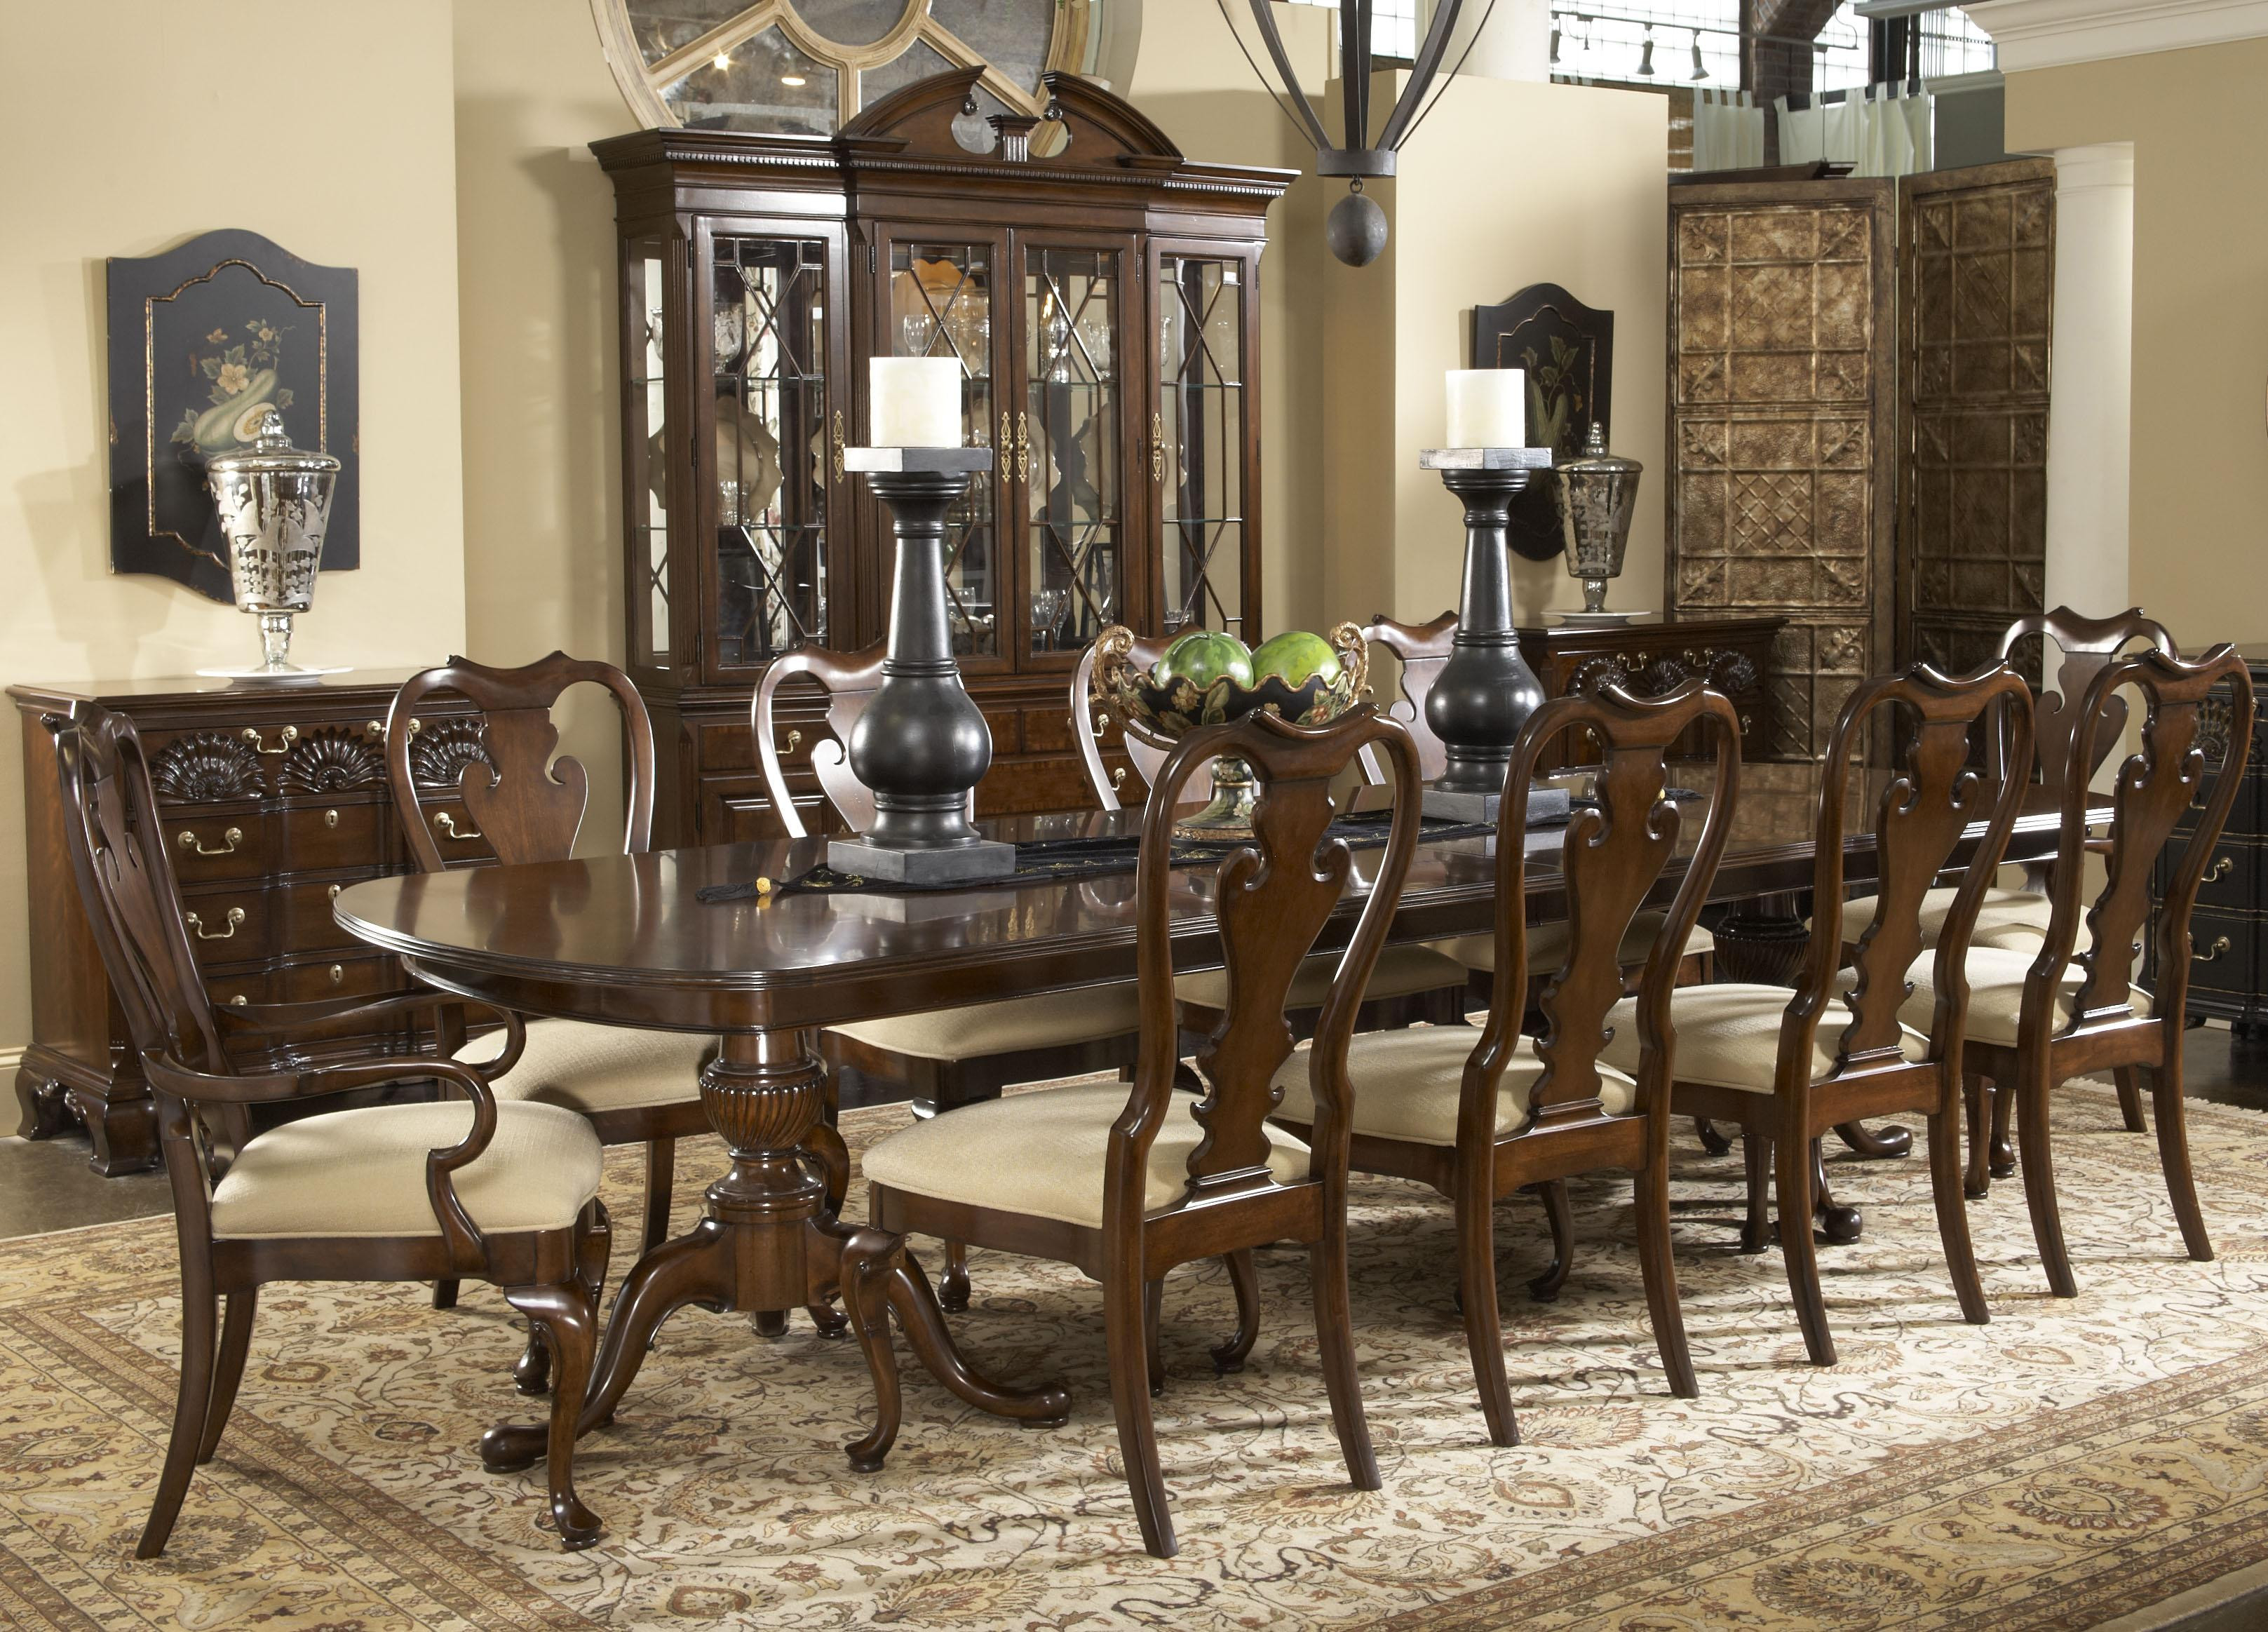 Best ideas about Dining Room Set . Save or Pin 11 Piece Dining Room Set Now.